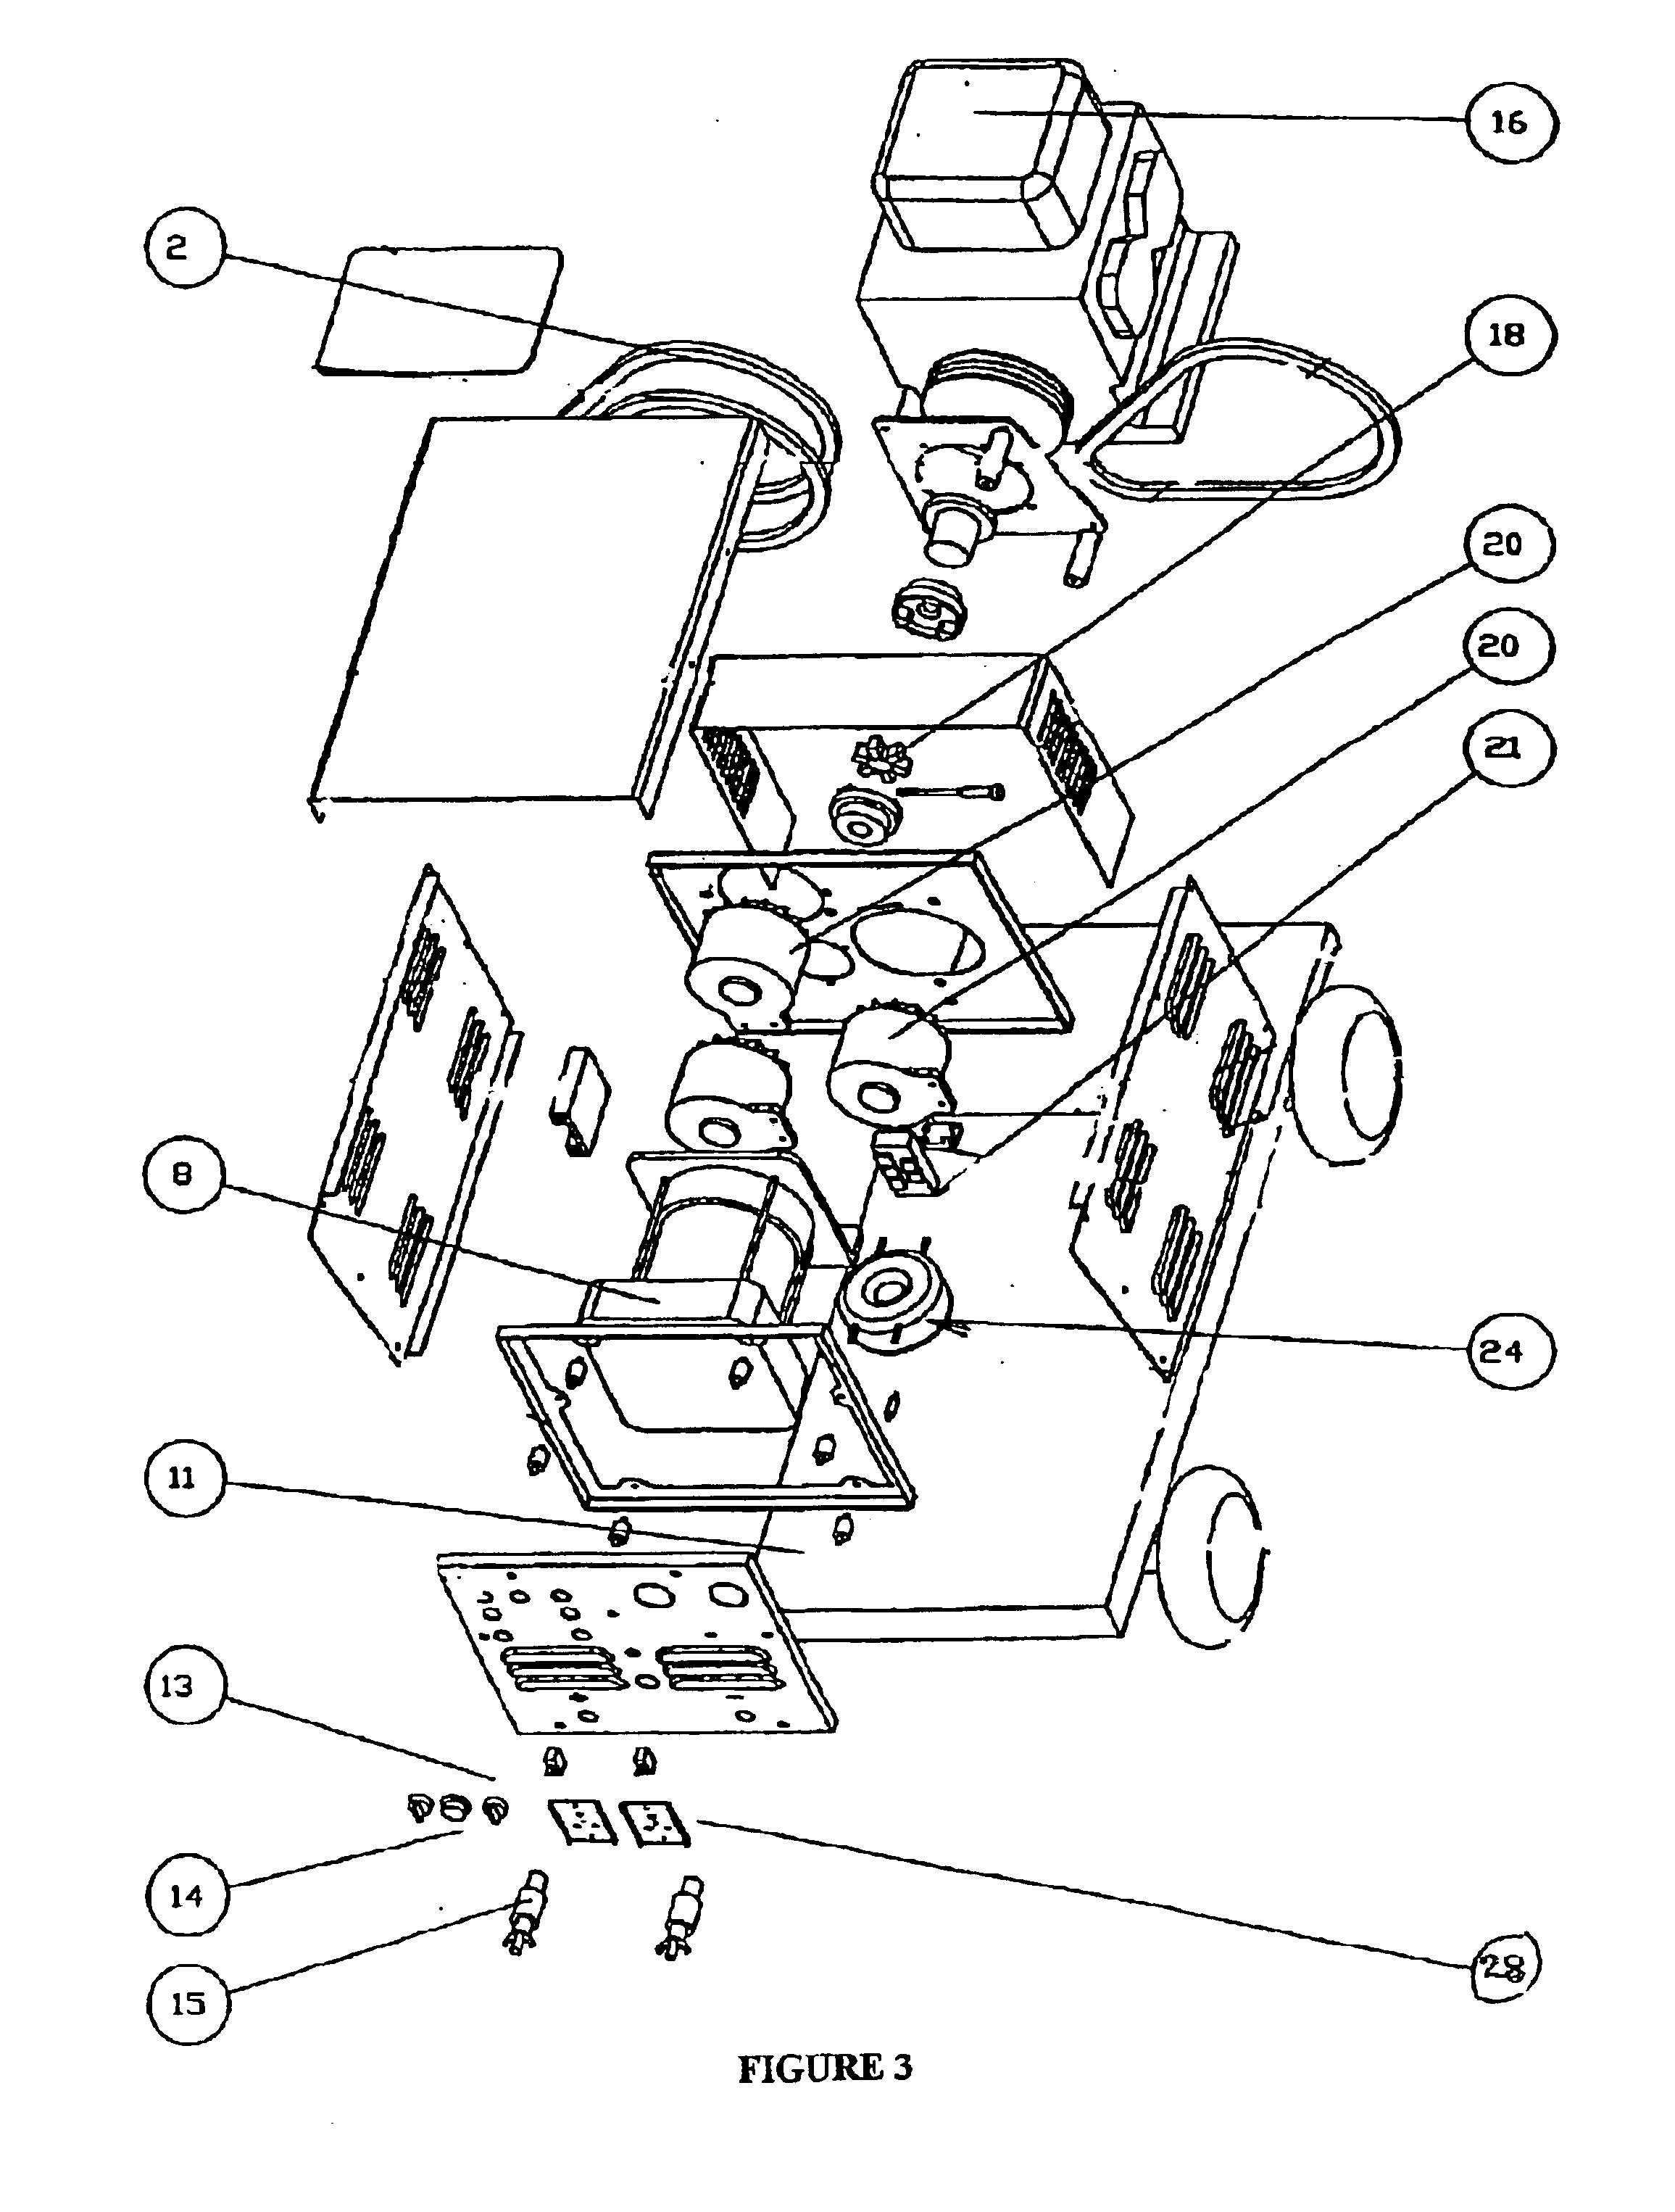 Wiring diagram generator leroy somer wiring diagram leroy somer motor wiring diagram wiring diagram and schematics patent drawing stamford alternator wiring diagrams pdf wiring diagram generator leroy somer asfbconference2016 Choice Image